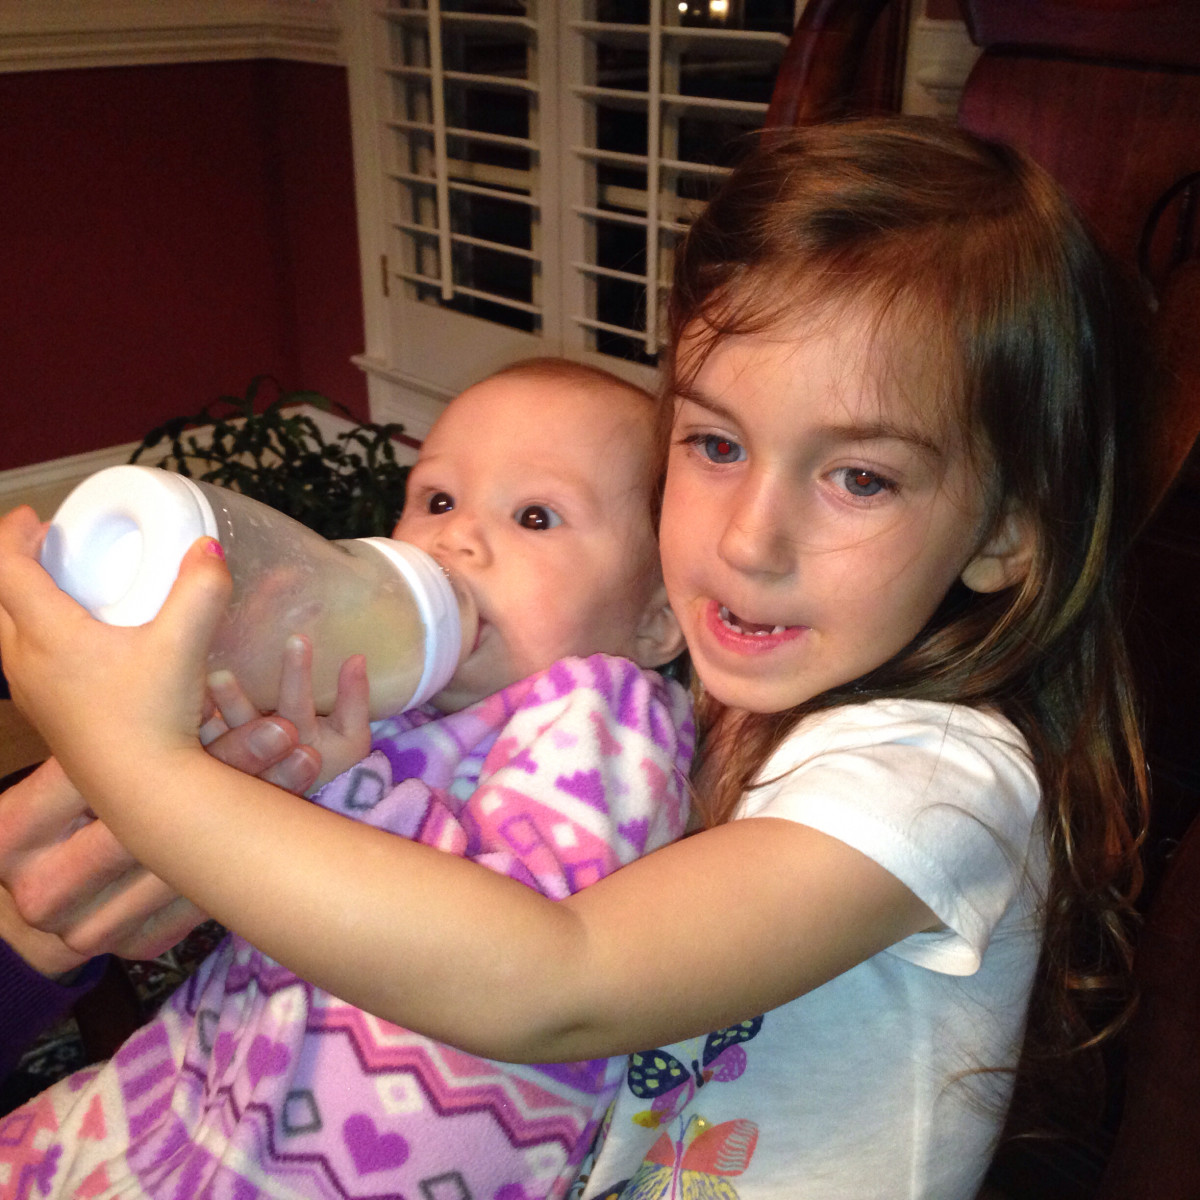 My Granddaughters . See her cousin feeding her with no problems